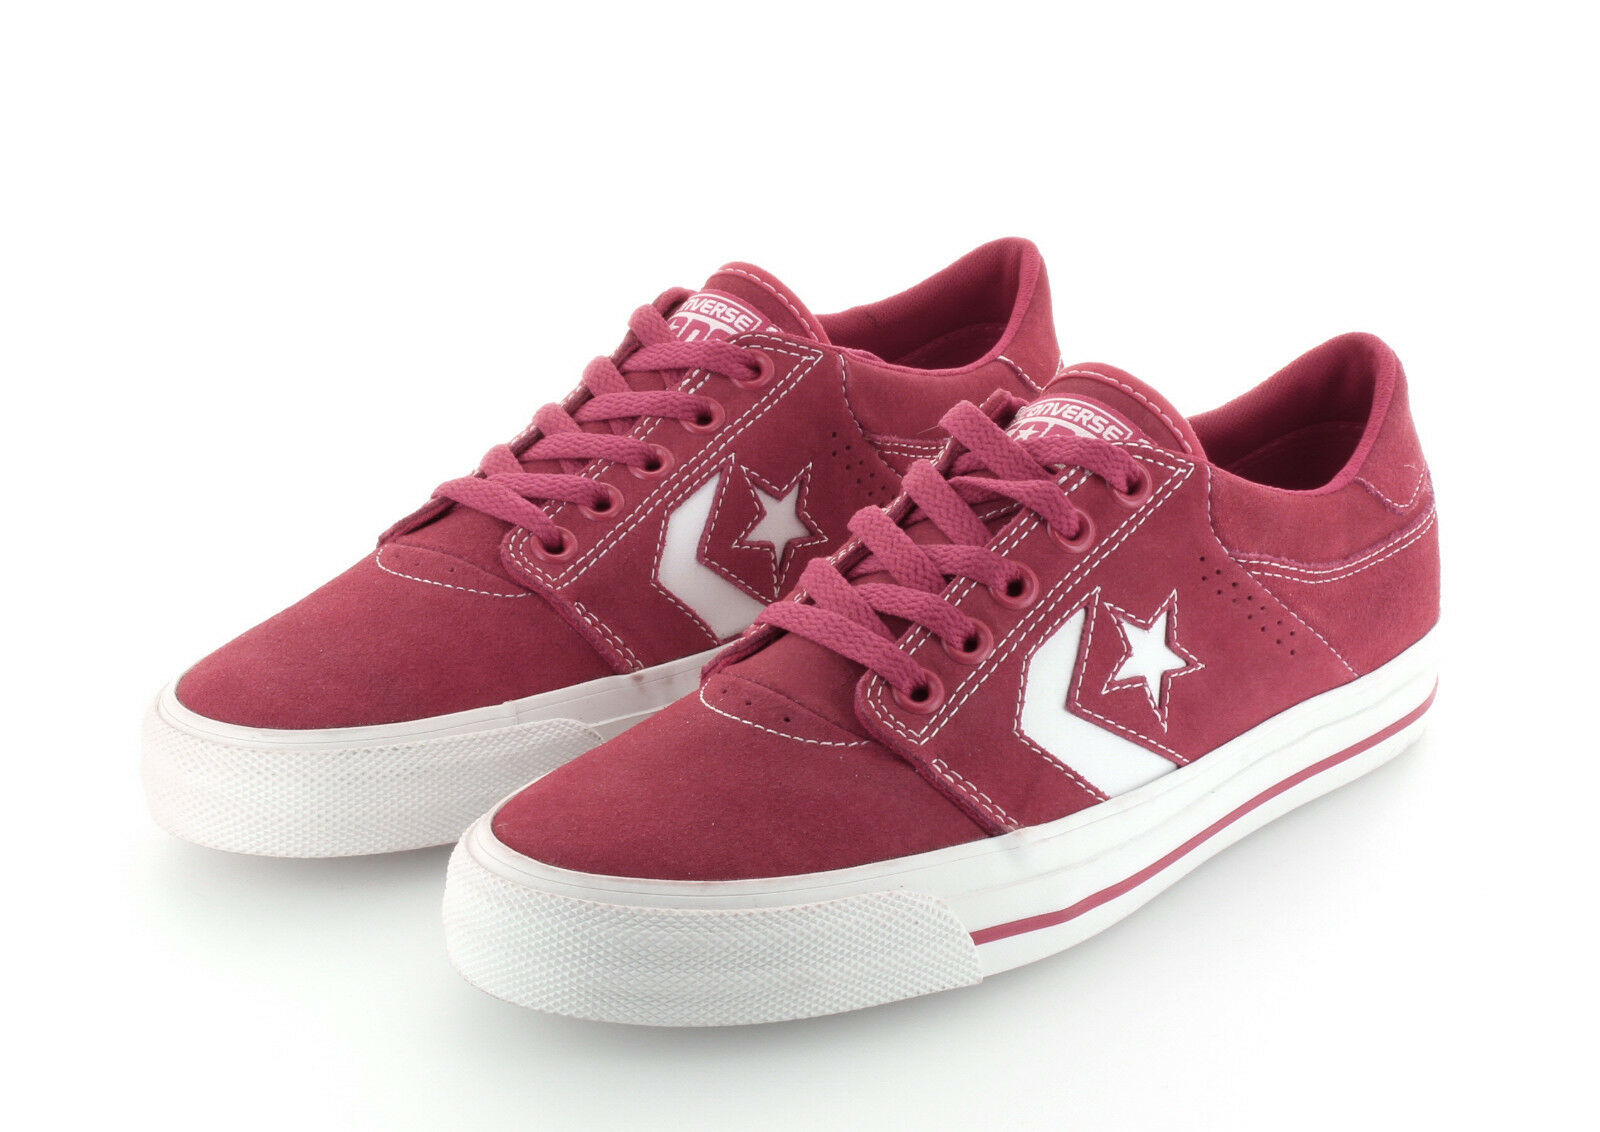 Converse Cons Tre Star Ox Red Suede Gr. 42,5  / 43 US 9